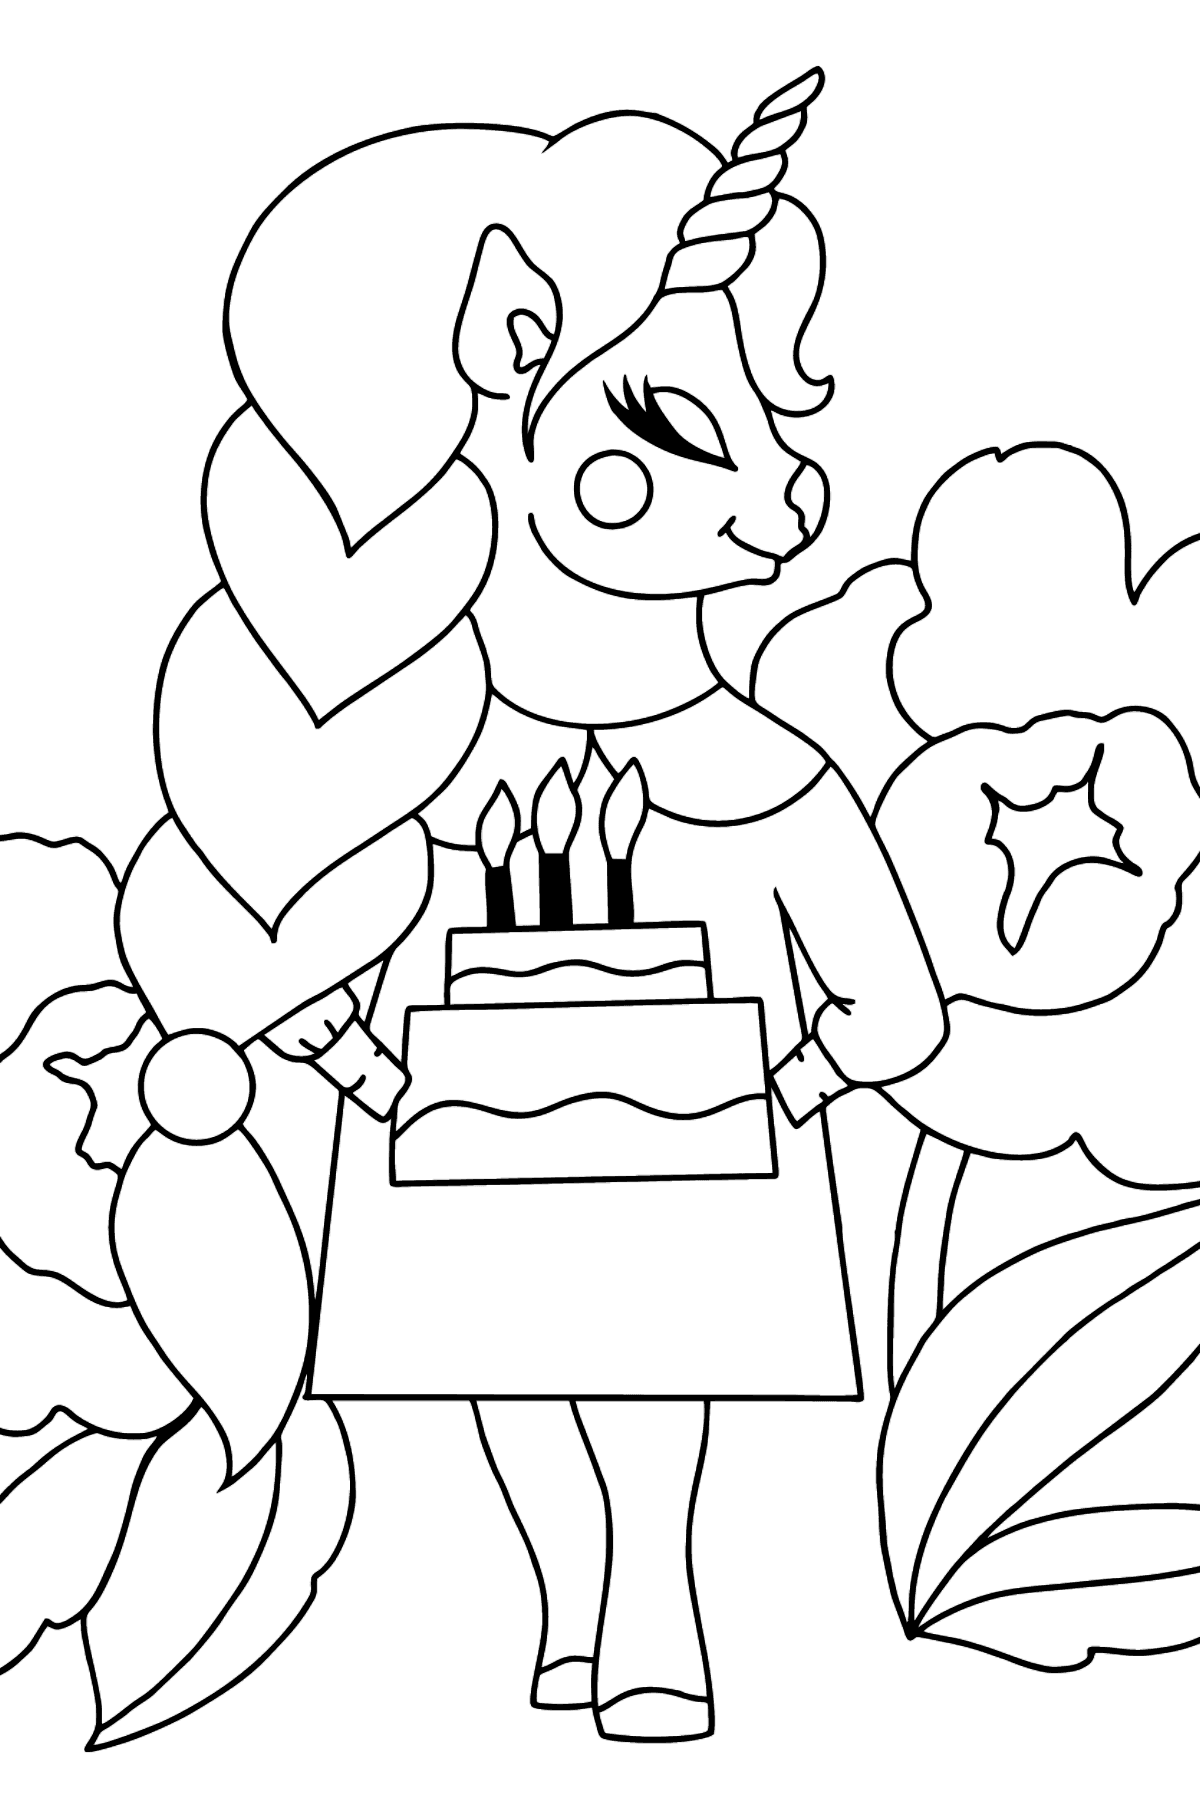 Simple Coloring Page - A Unicorn with a Cake - Coloring Pages for Kids